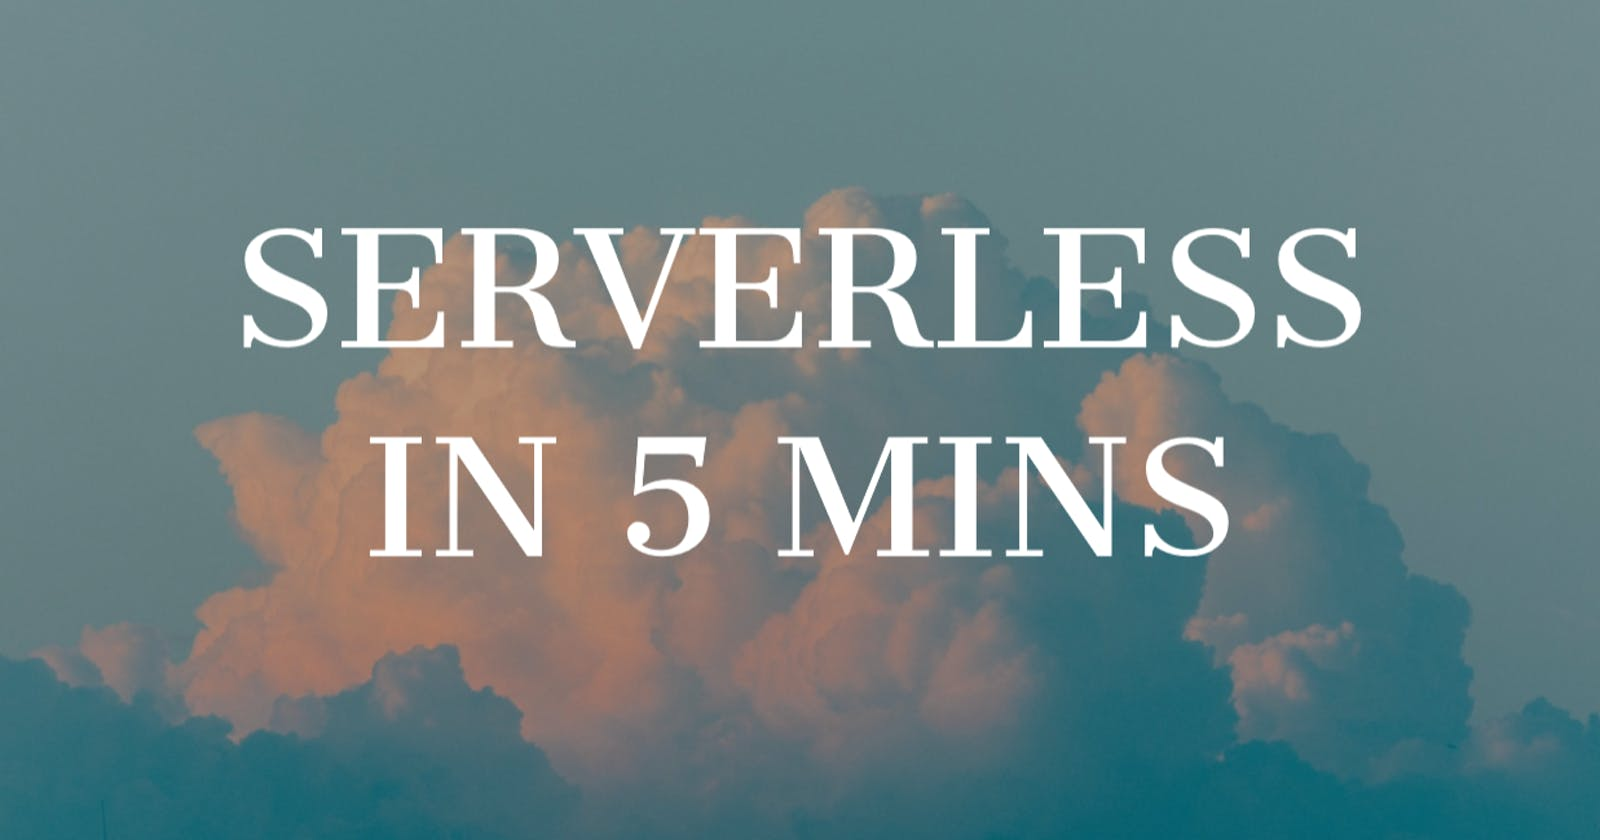 Build & Deploy Serverless Functions in 5 Minutes